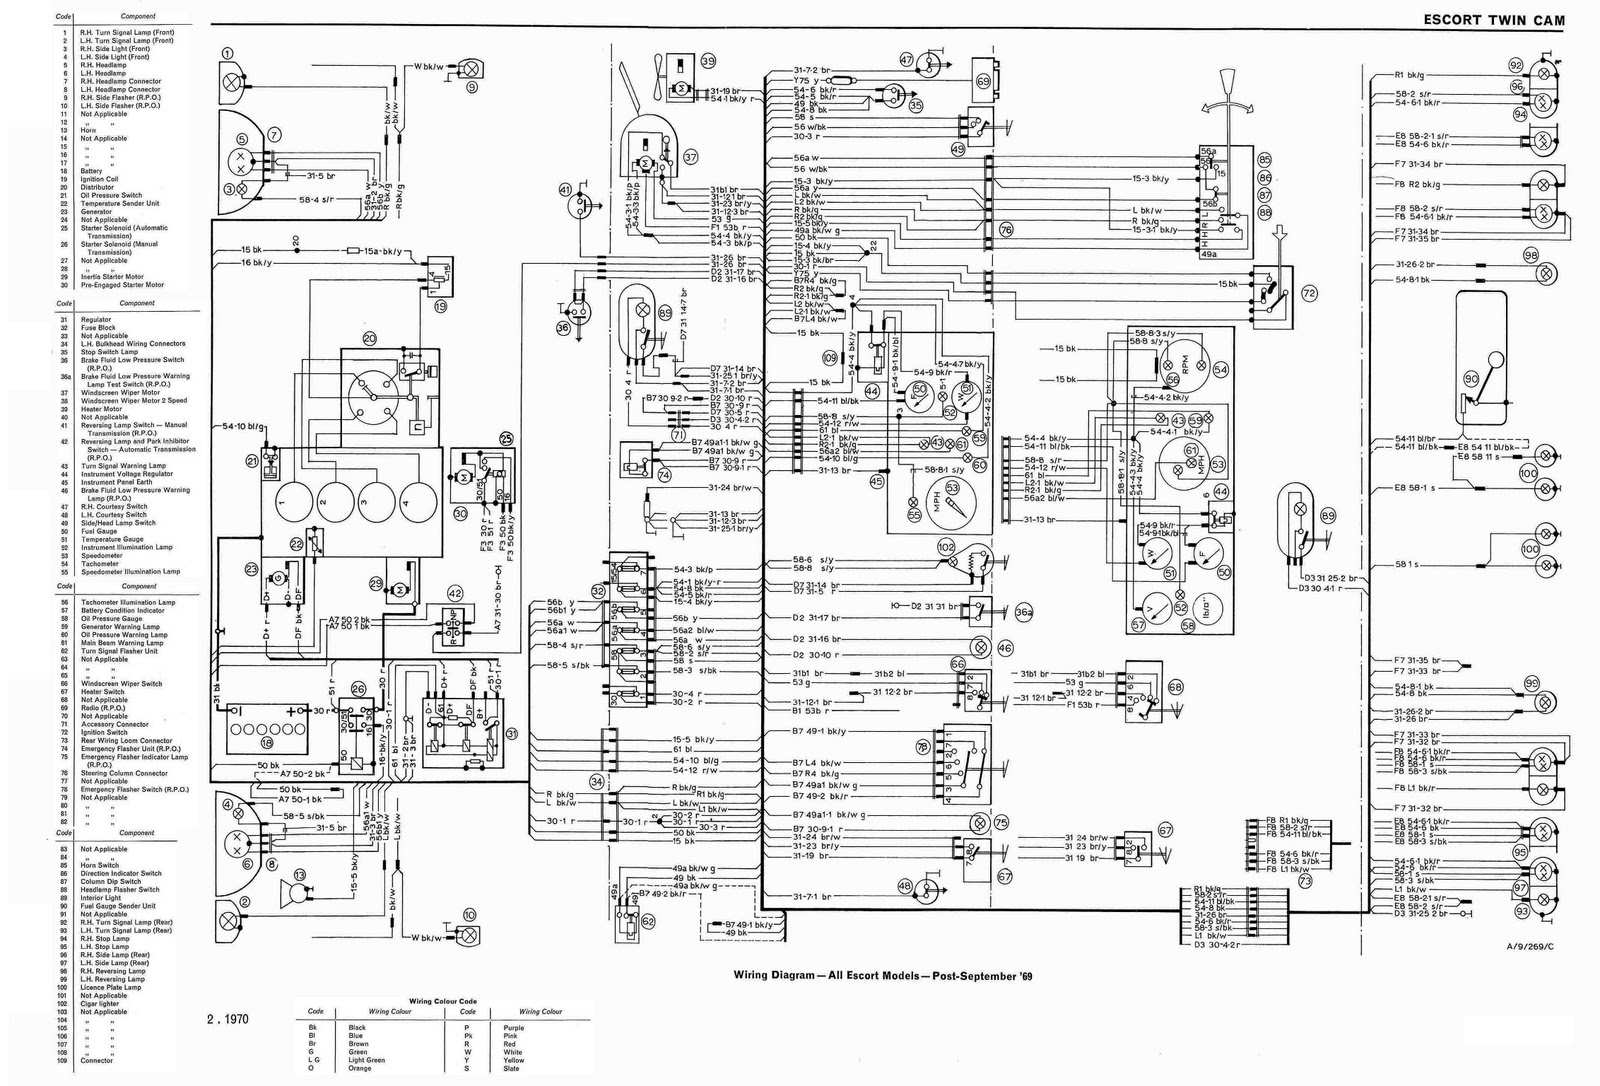 69 cadillac wiring diagram wiring diagram third level1969 ford galaxie wiring  diagram wiring diagram third level